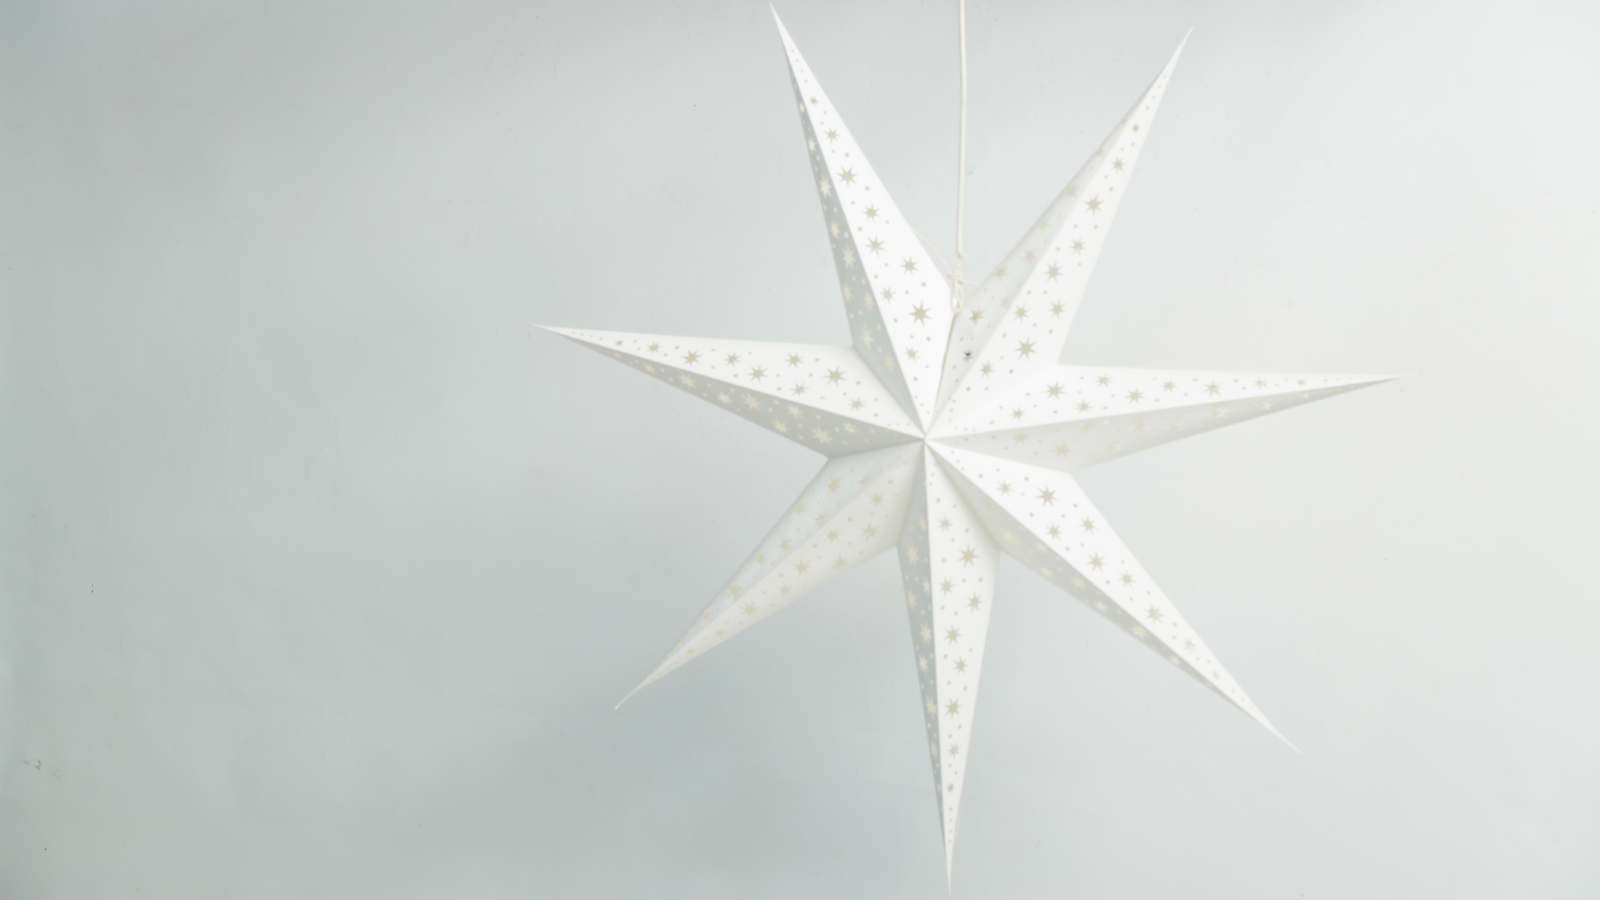 Deluxe Paper Star Light Shades, Hanging Ceiling Lampshades Christmas ...